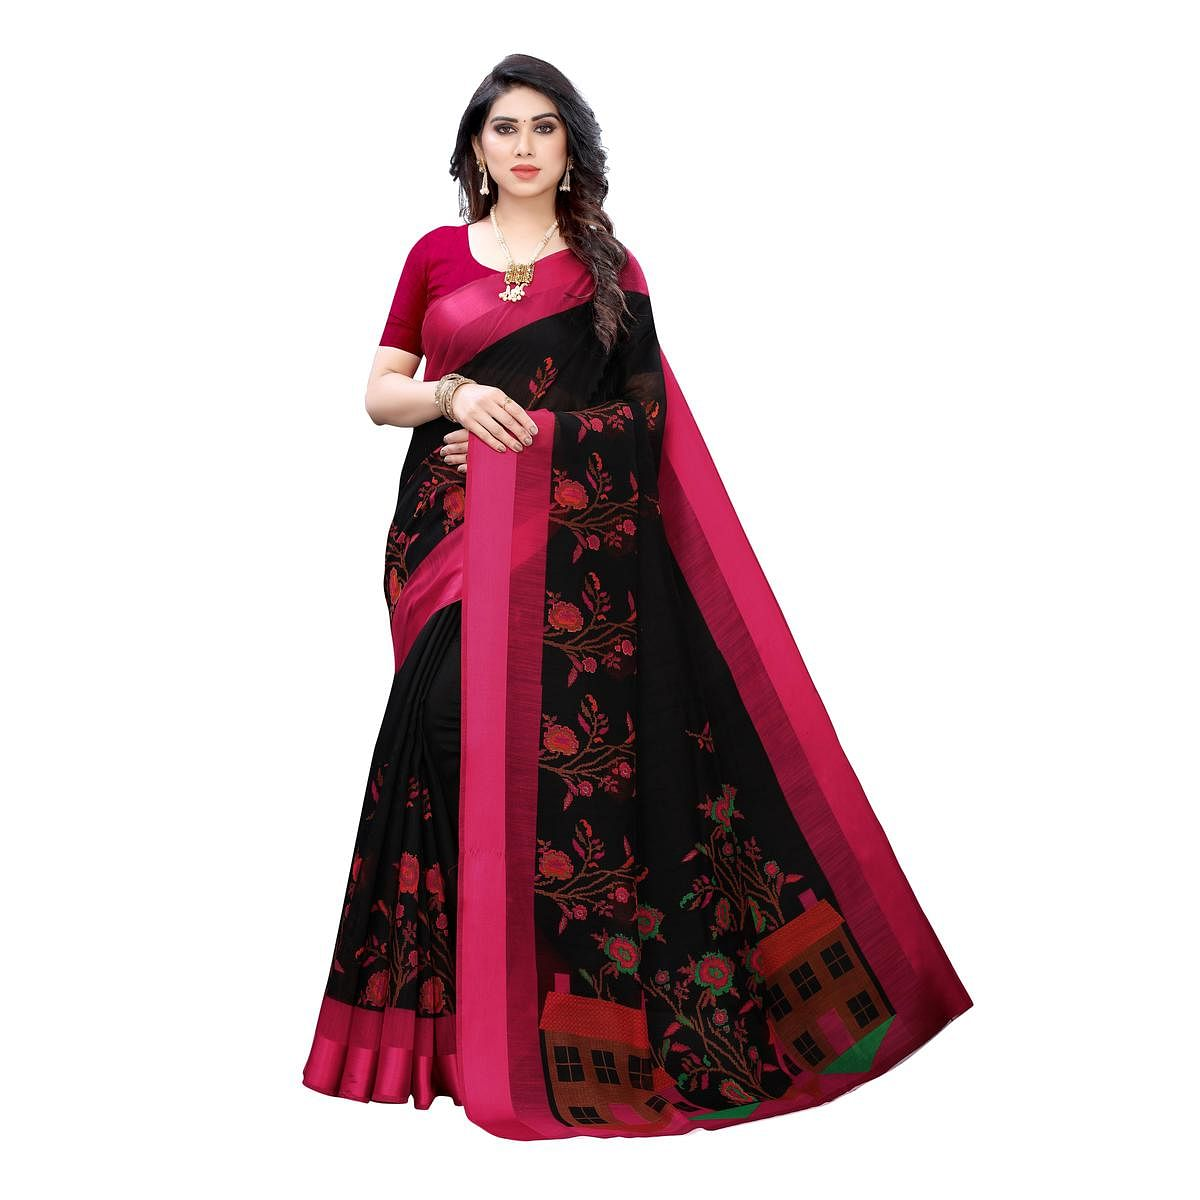 Adorable Black Colored Casual Wear Floral Printed Linen Saree